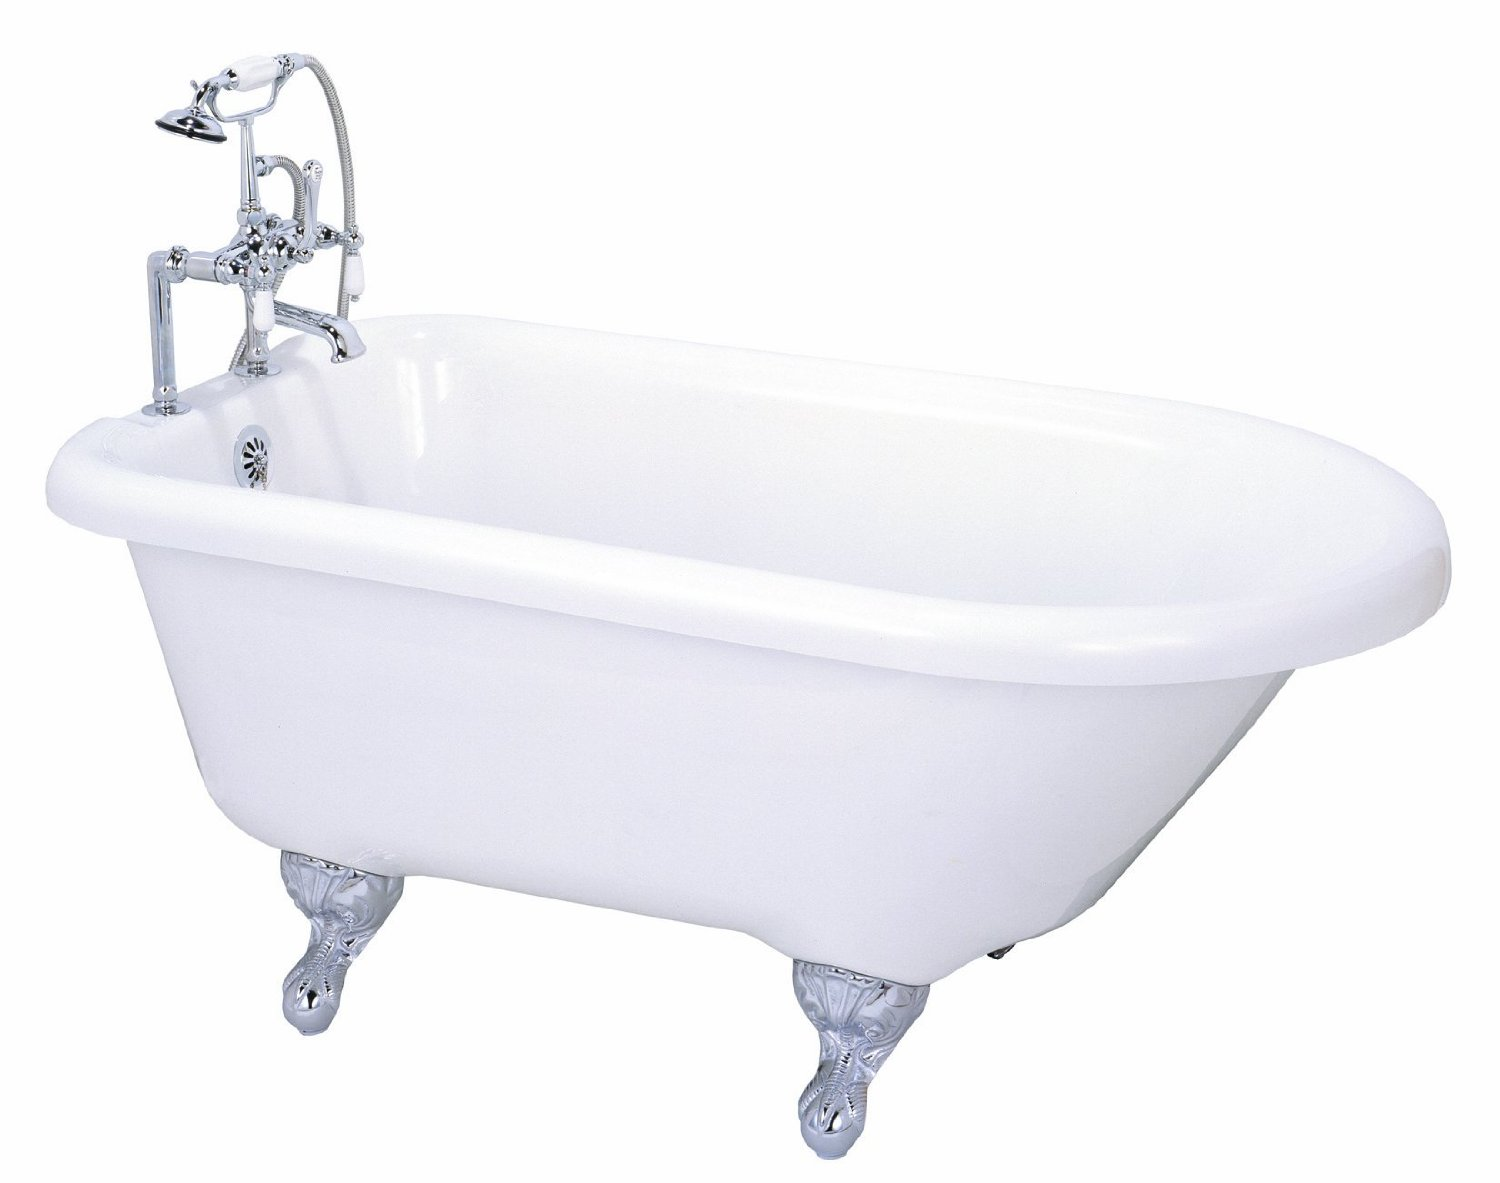 55u2033 Roll Top Clawfoot Tub From Elizabethan Classics